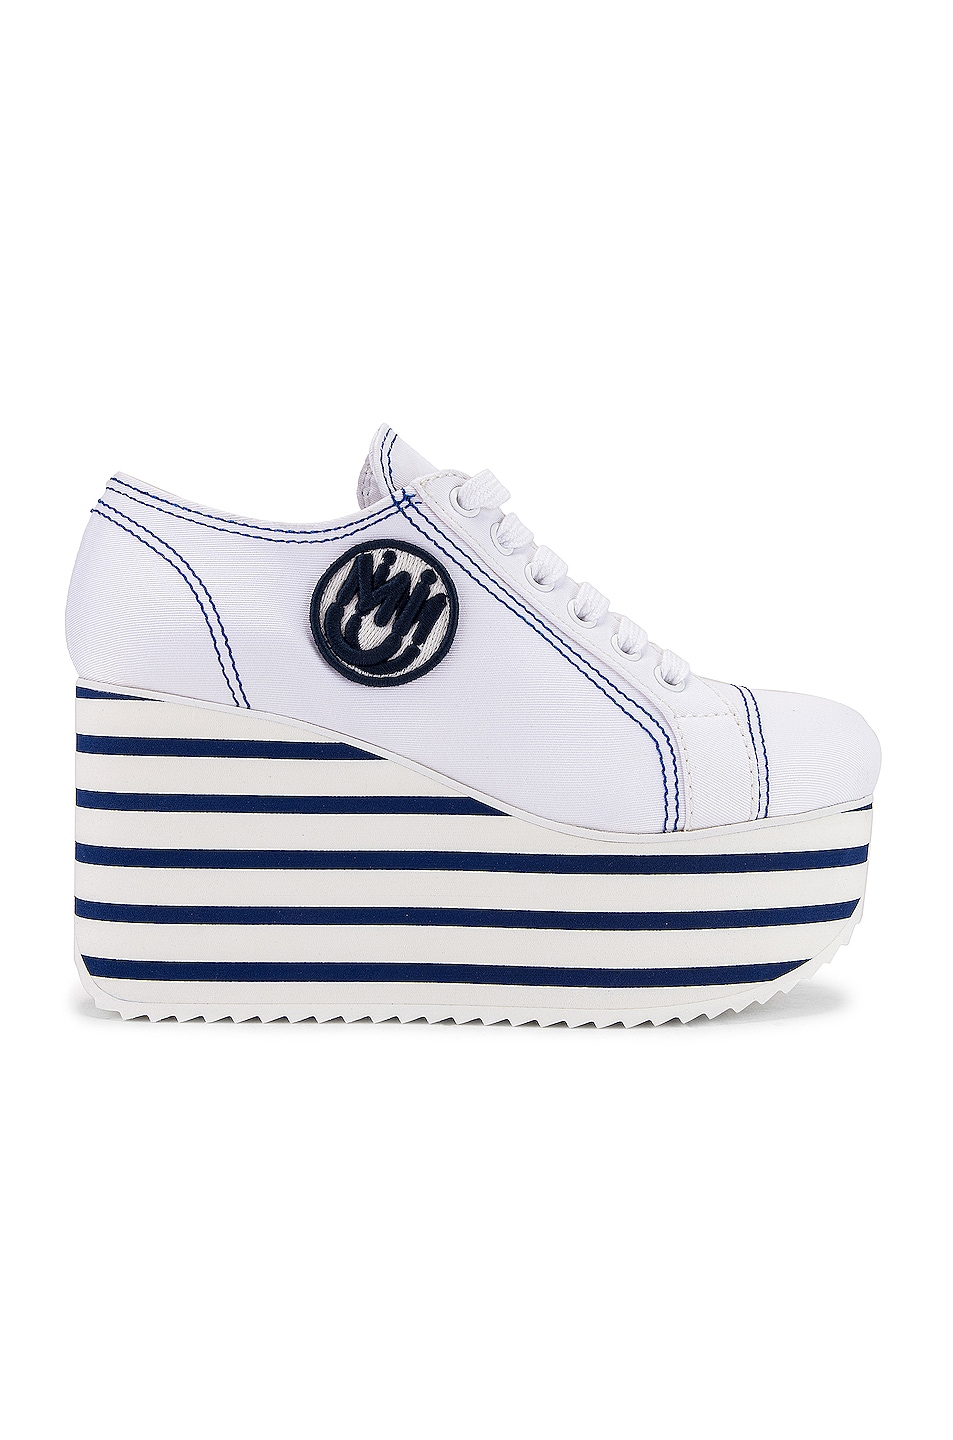 Image 1 of Miu Miu Platform Sneakers in Bianco & Bluette